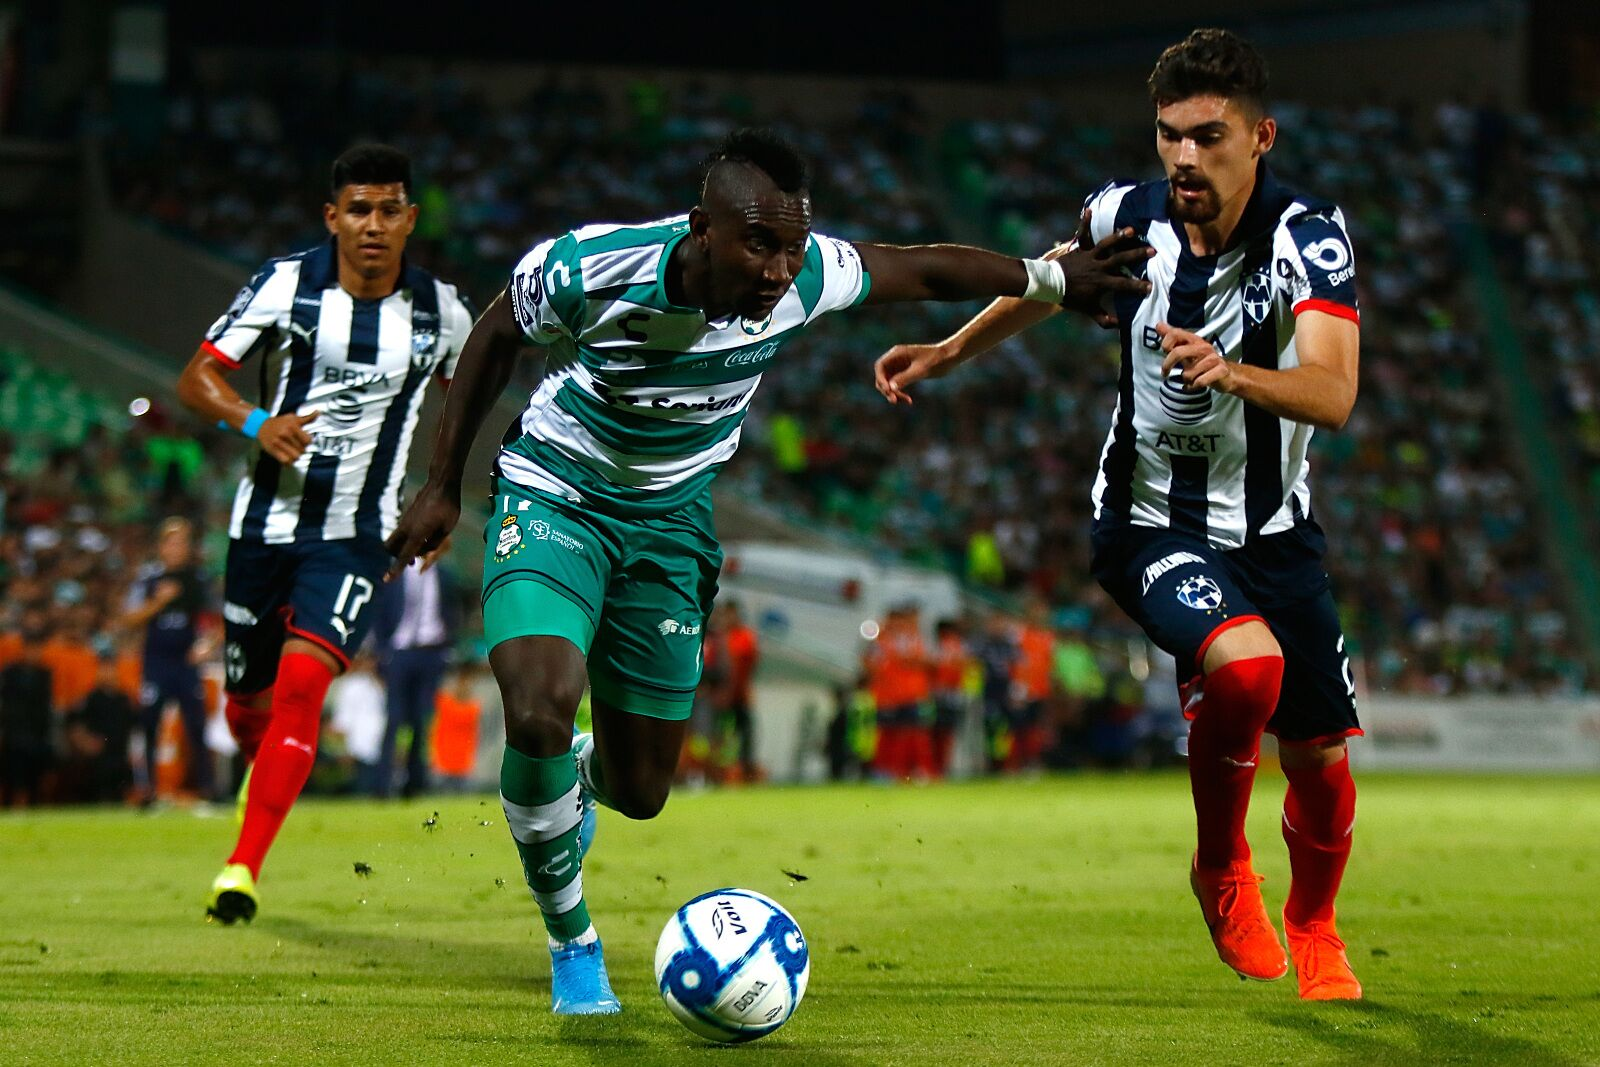 Santos jumps on Monterrey early, holds on for 2-1 victory